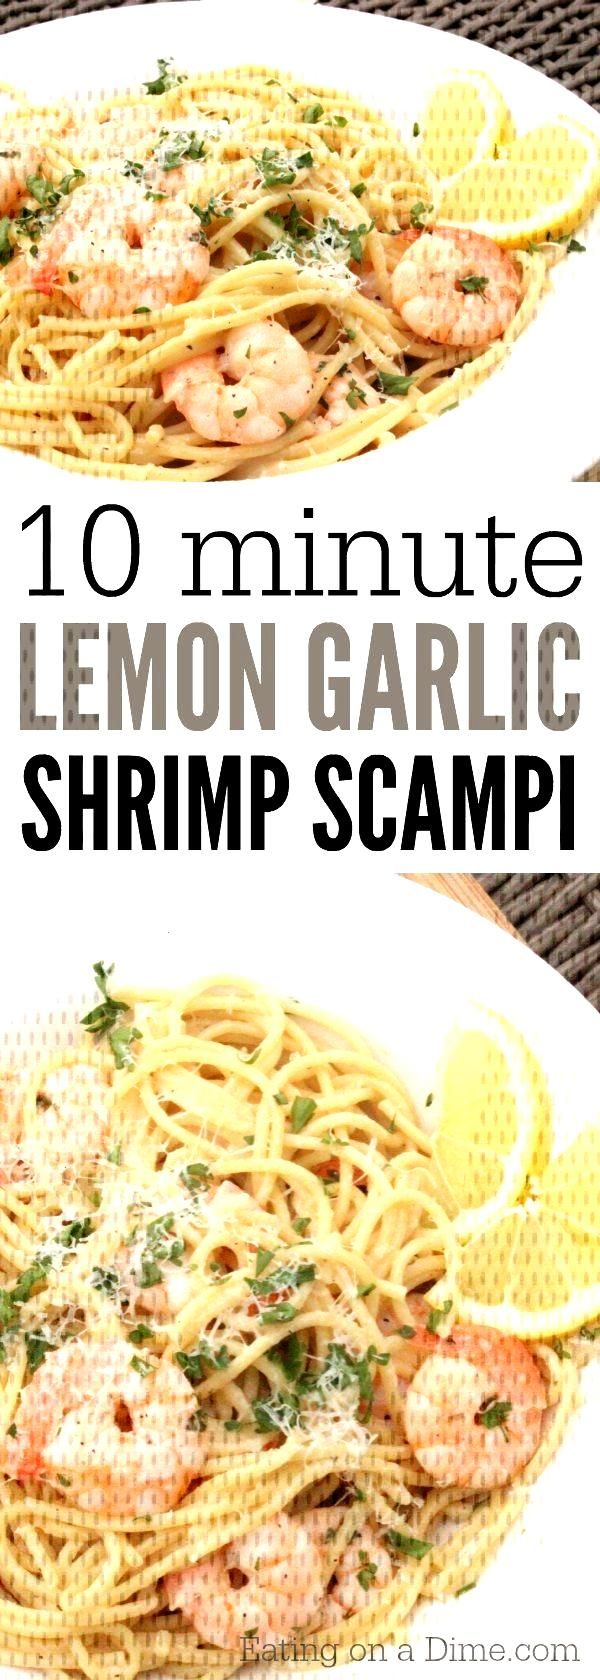 You are going to love this Lemon Garlic Shrimp Scampi Recipe - in just 10 minute... - You are goin